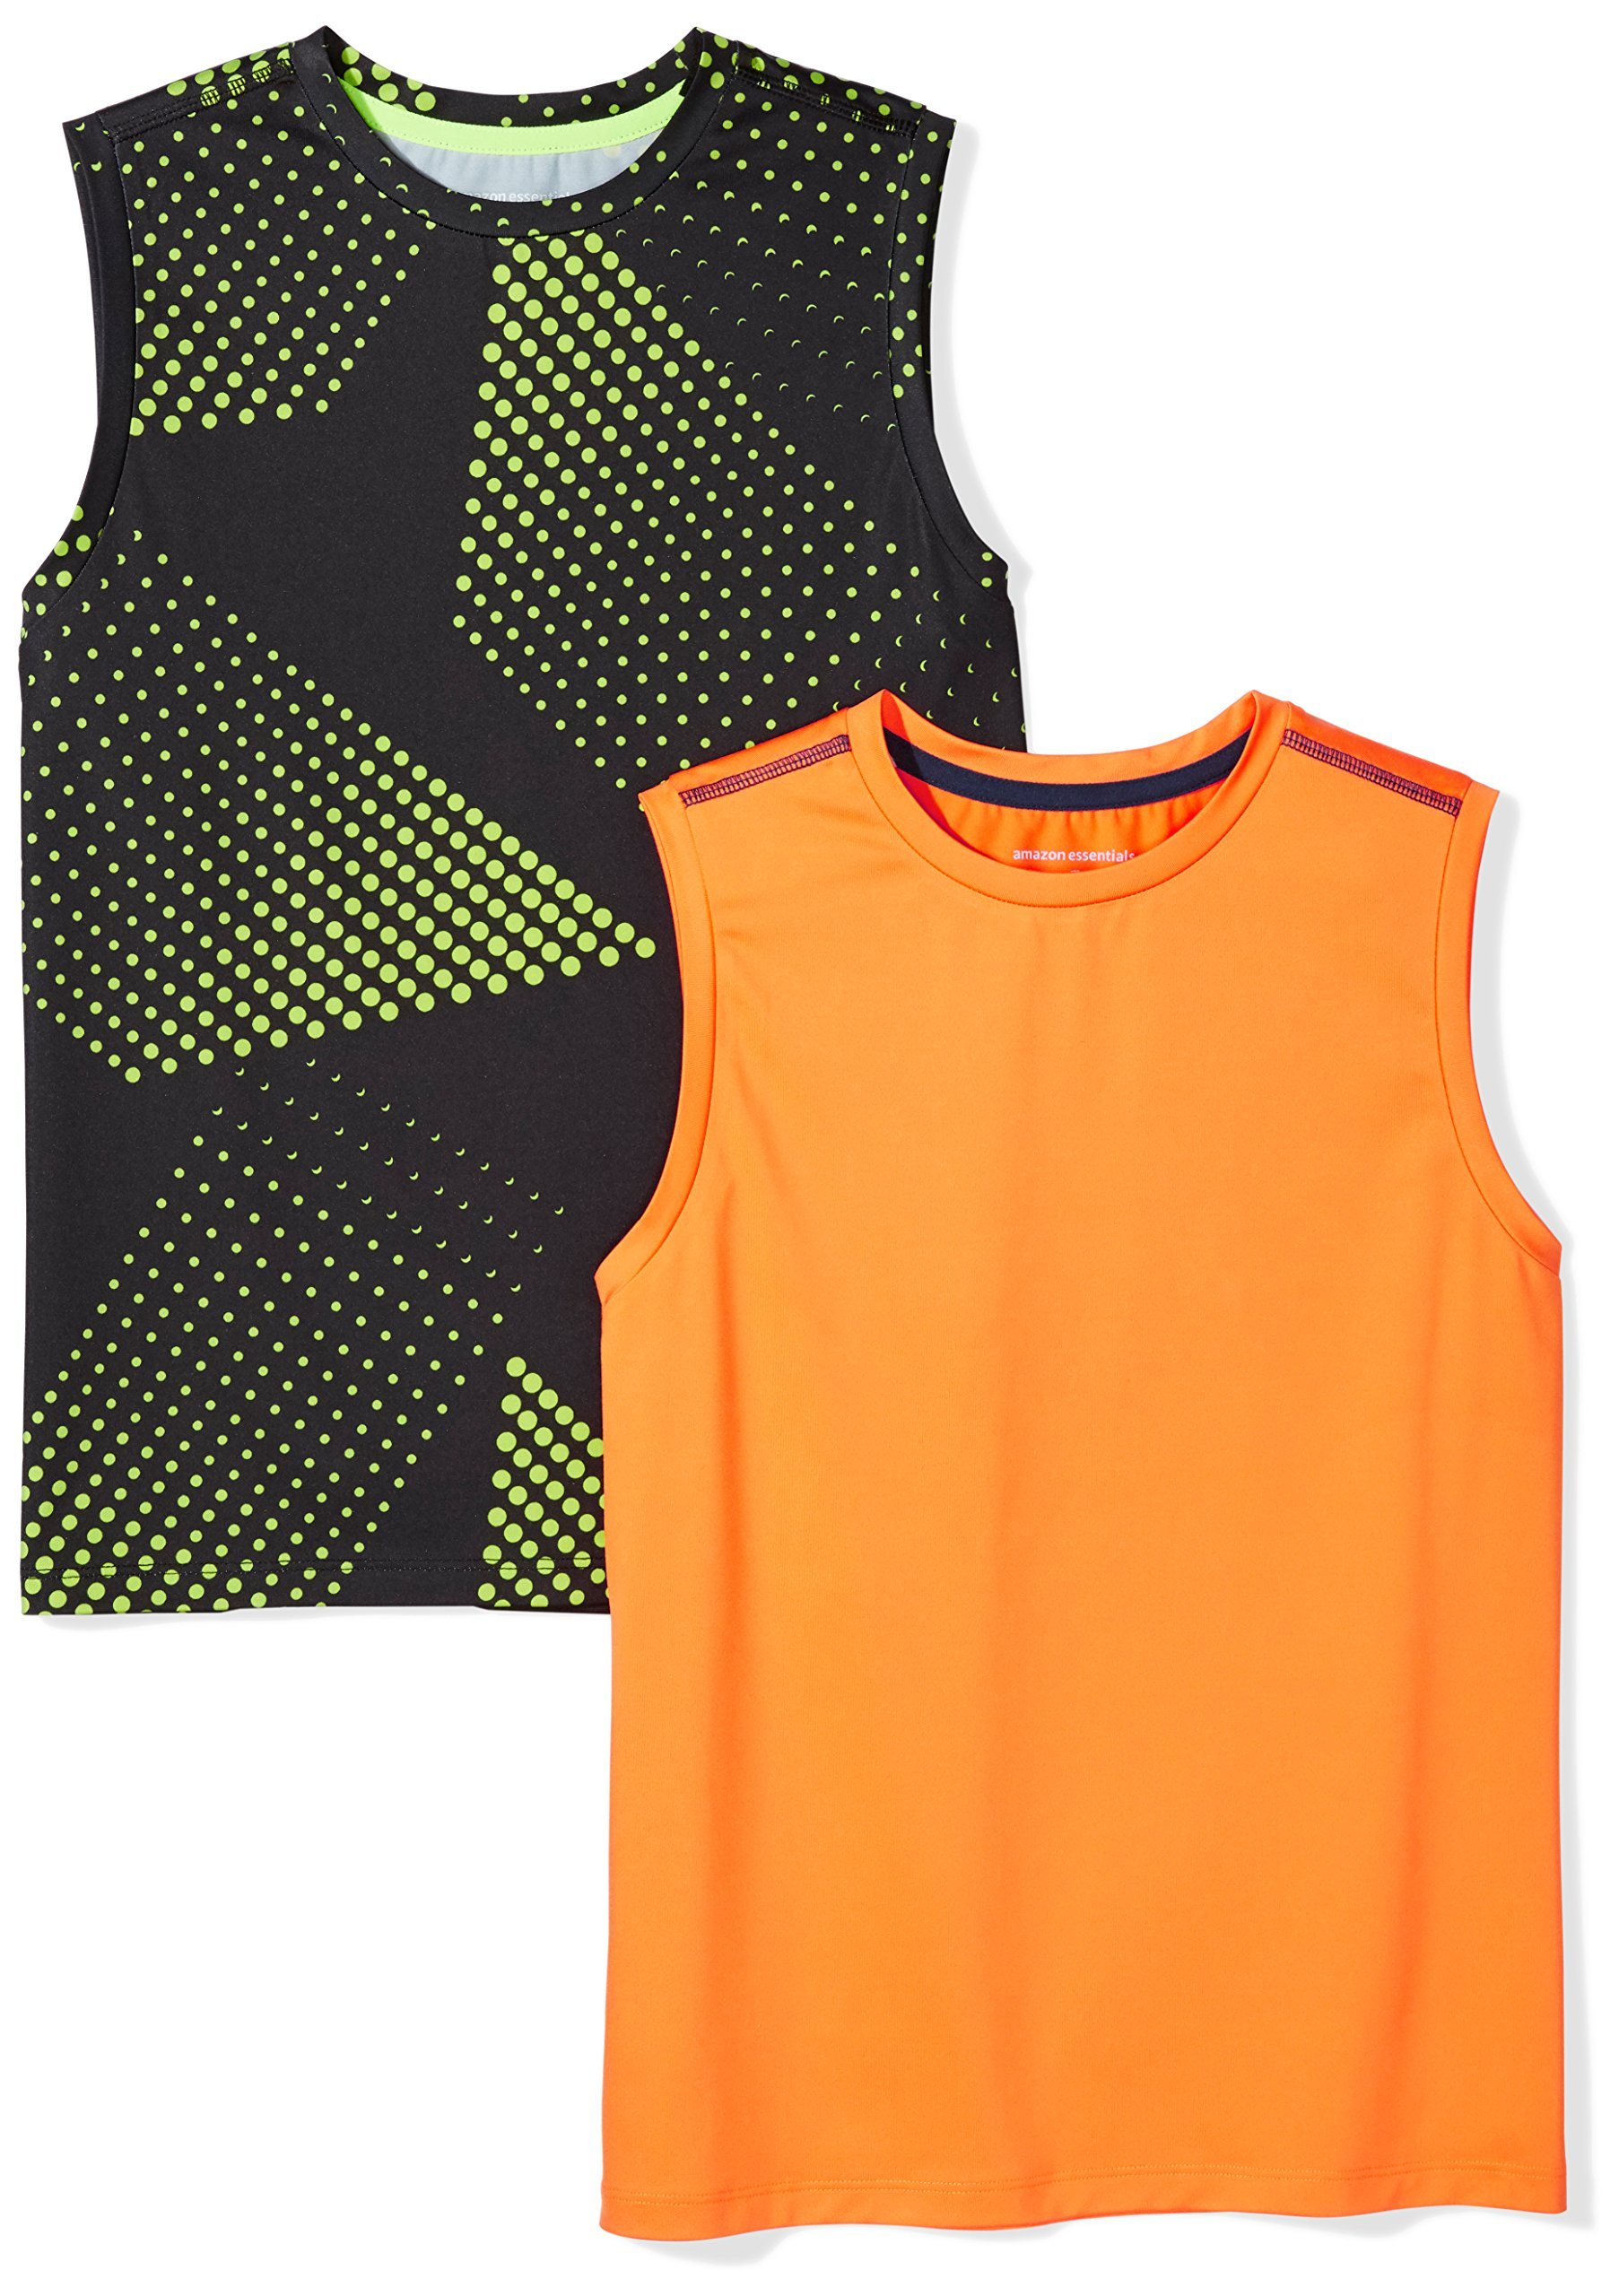 Amazon Essentials Boys' 2-Pack Active Muscle Tank, Gradient/Orange, M by Amazon Essentials (Image #1)